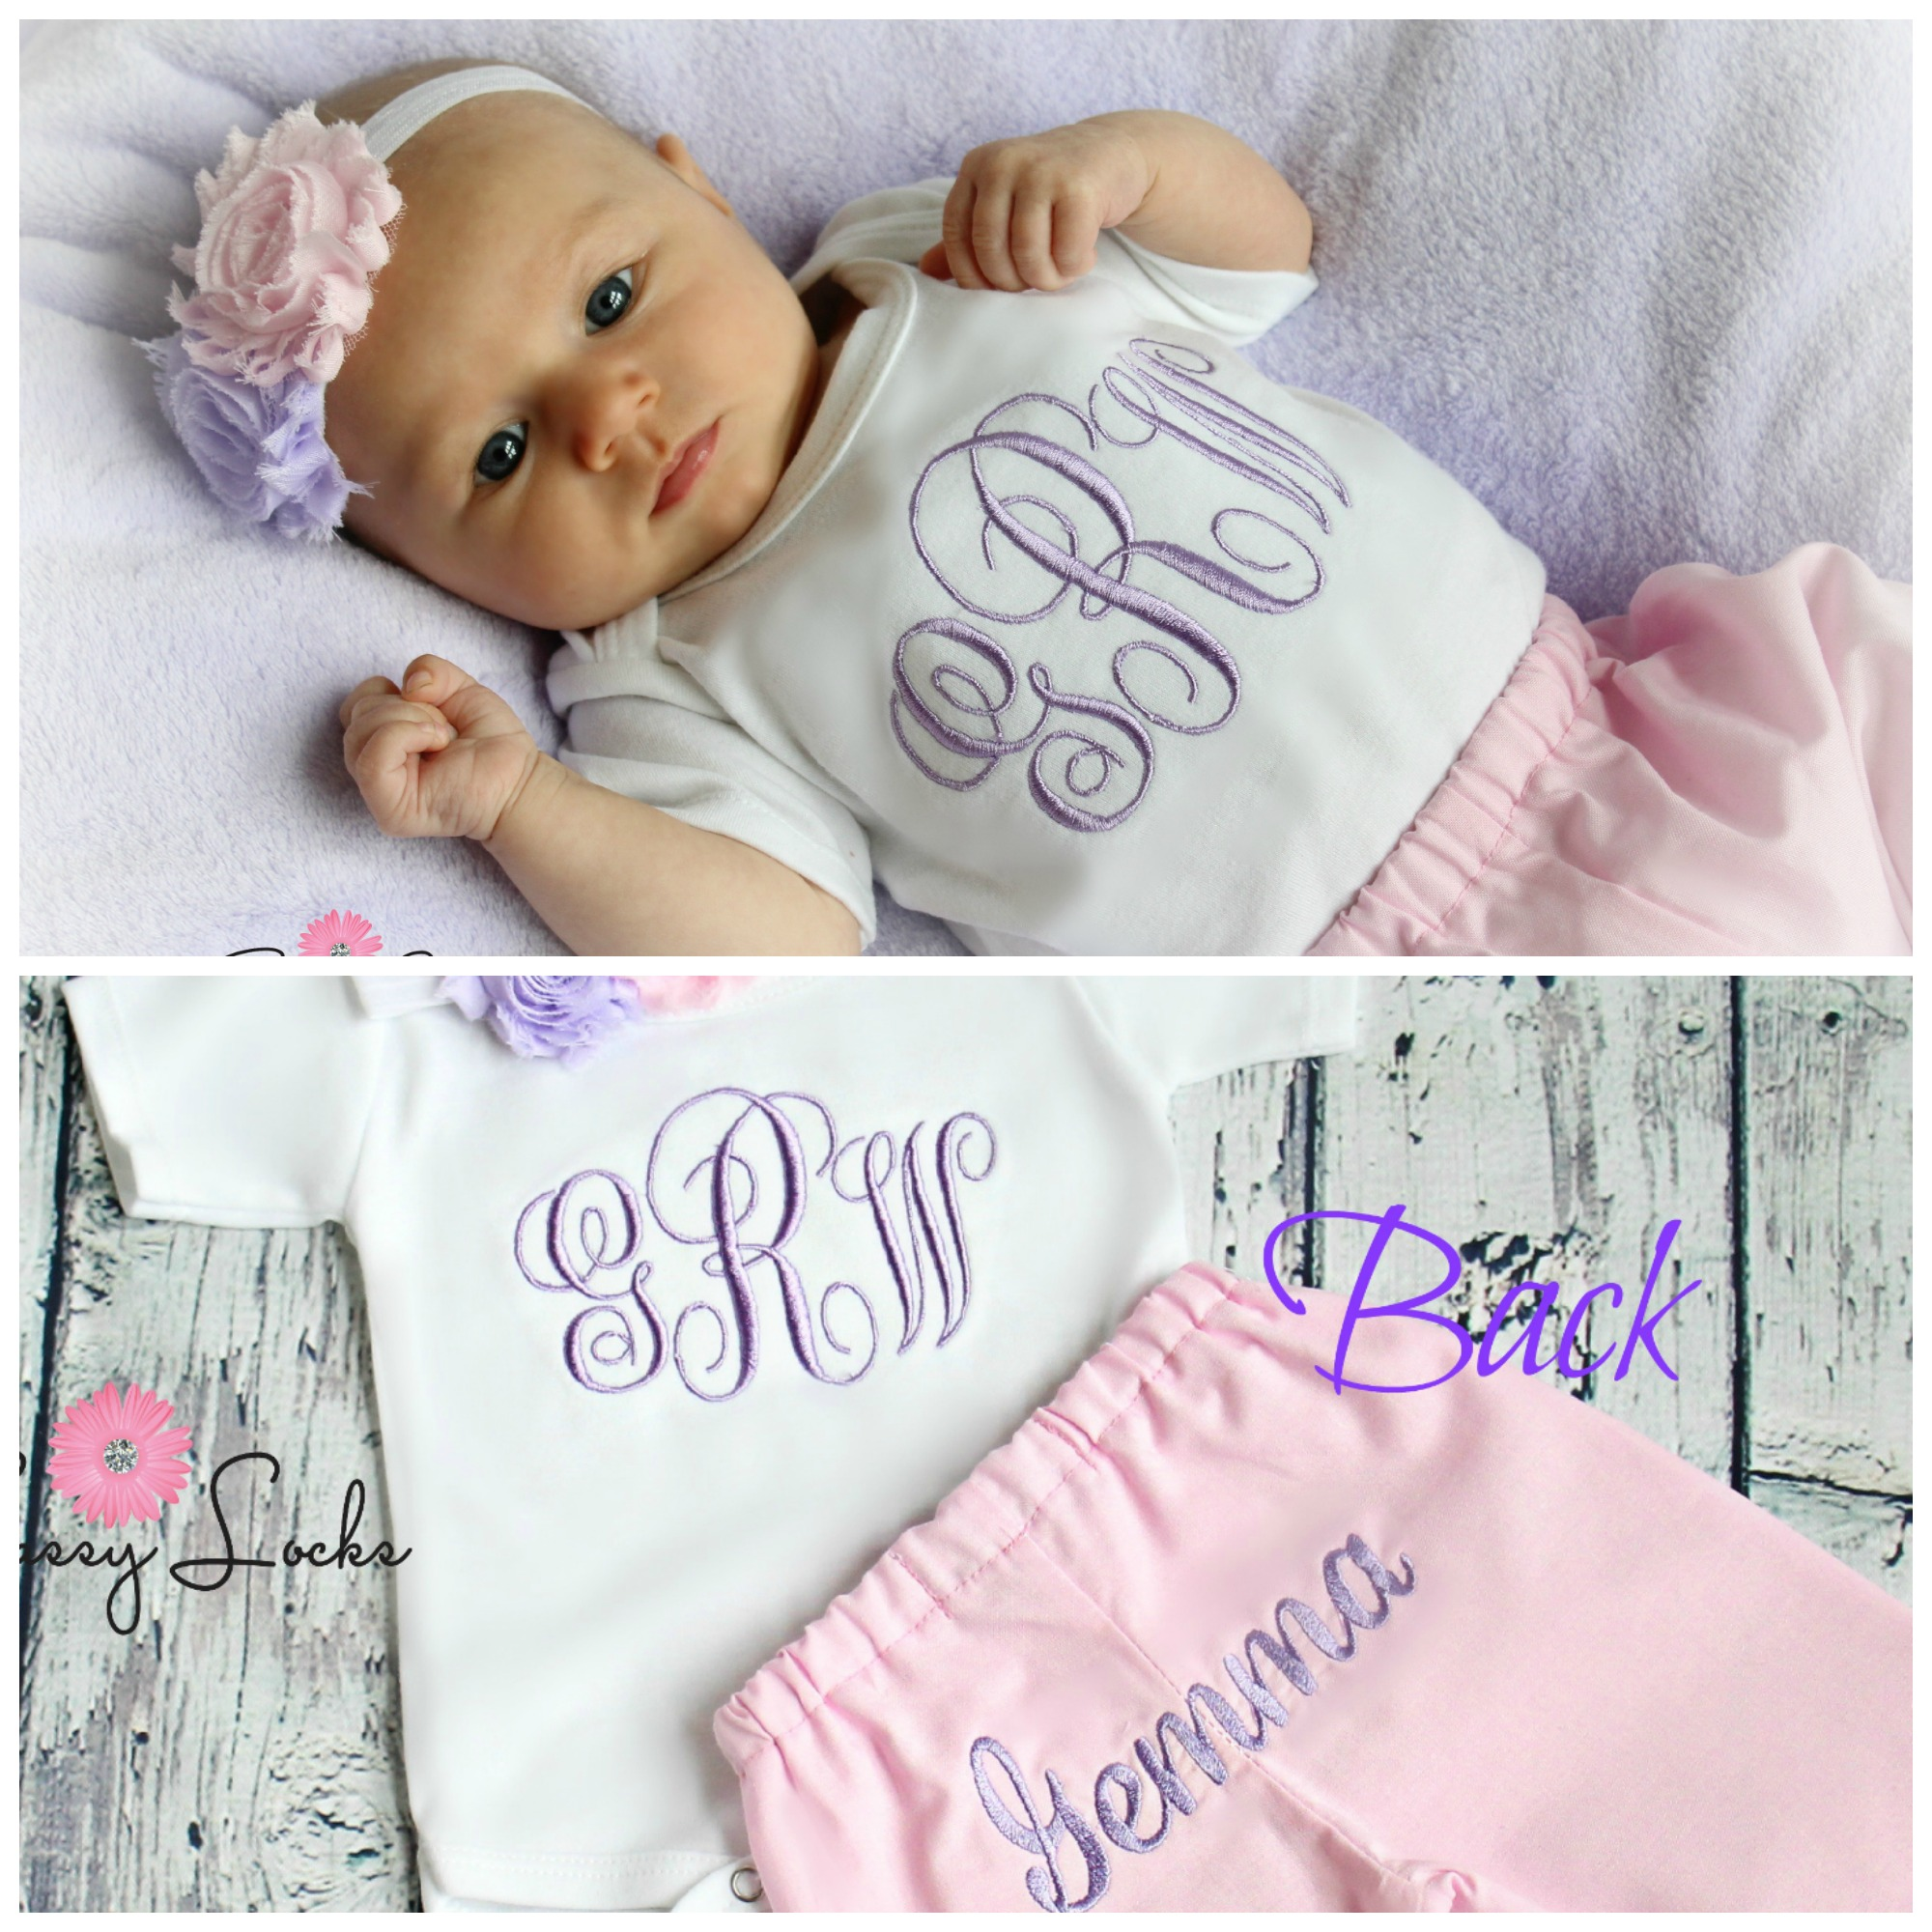 baby gown monogram baby monogrammed baby gown monogram baby gown monogram layette baby gowns